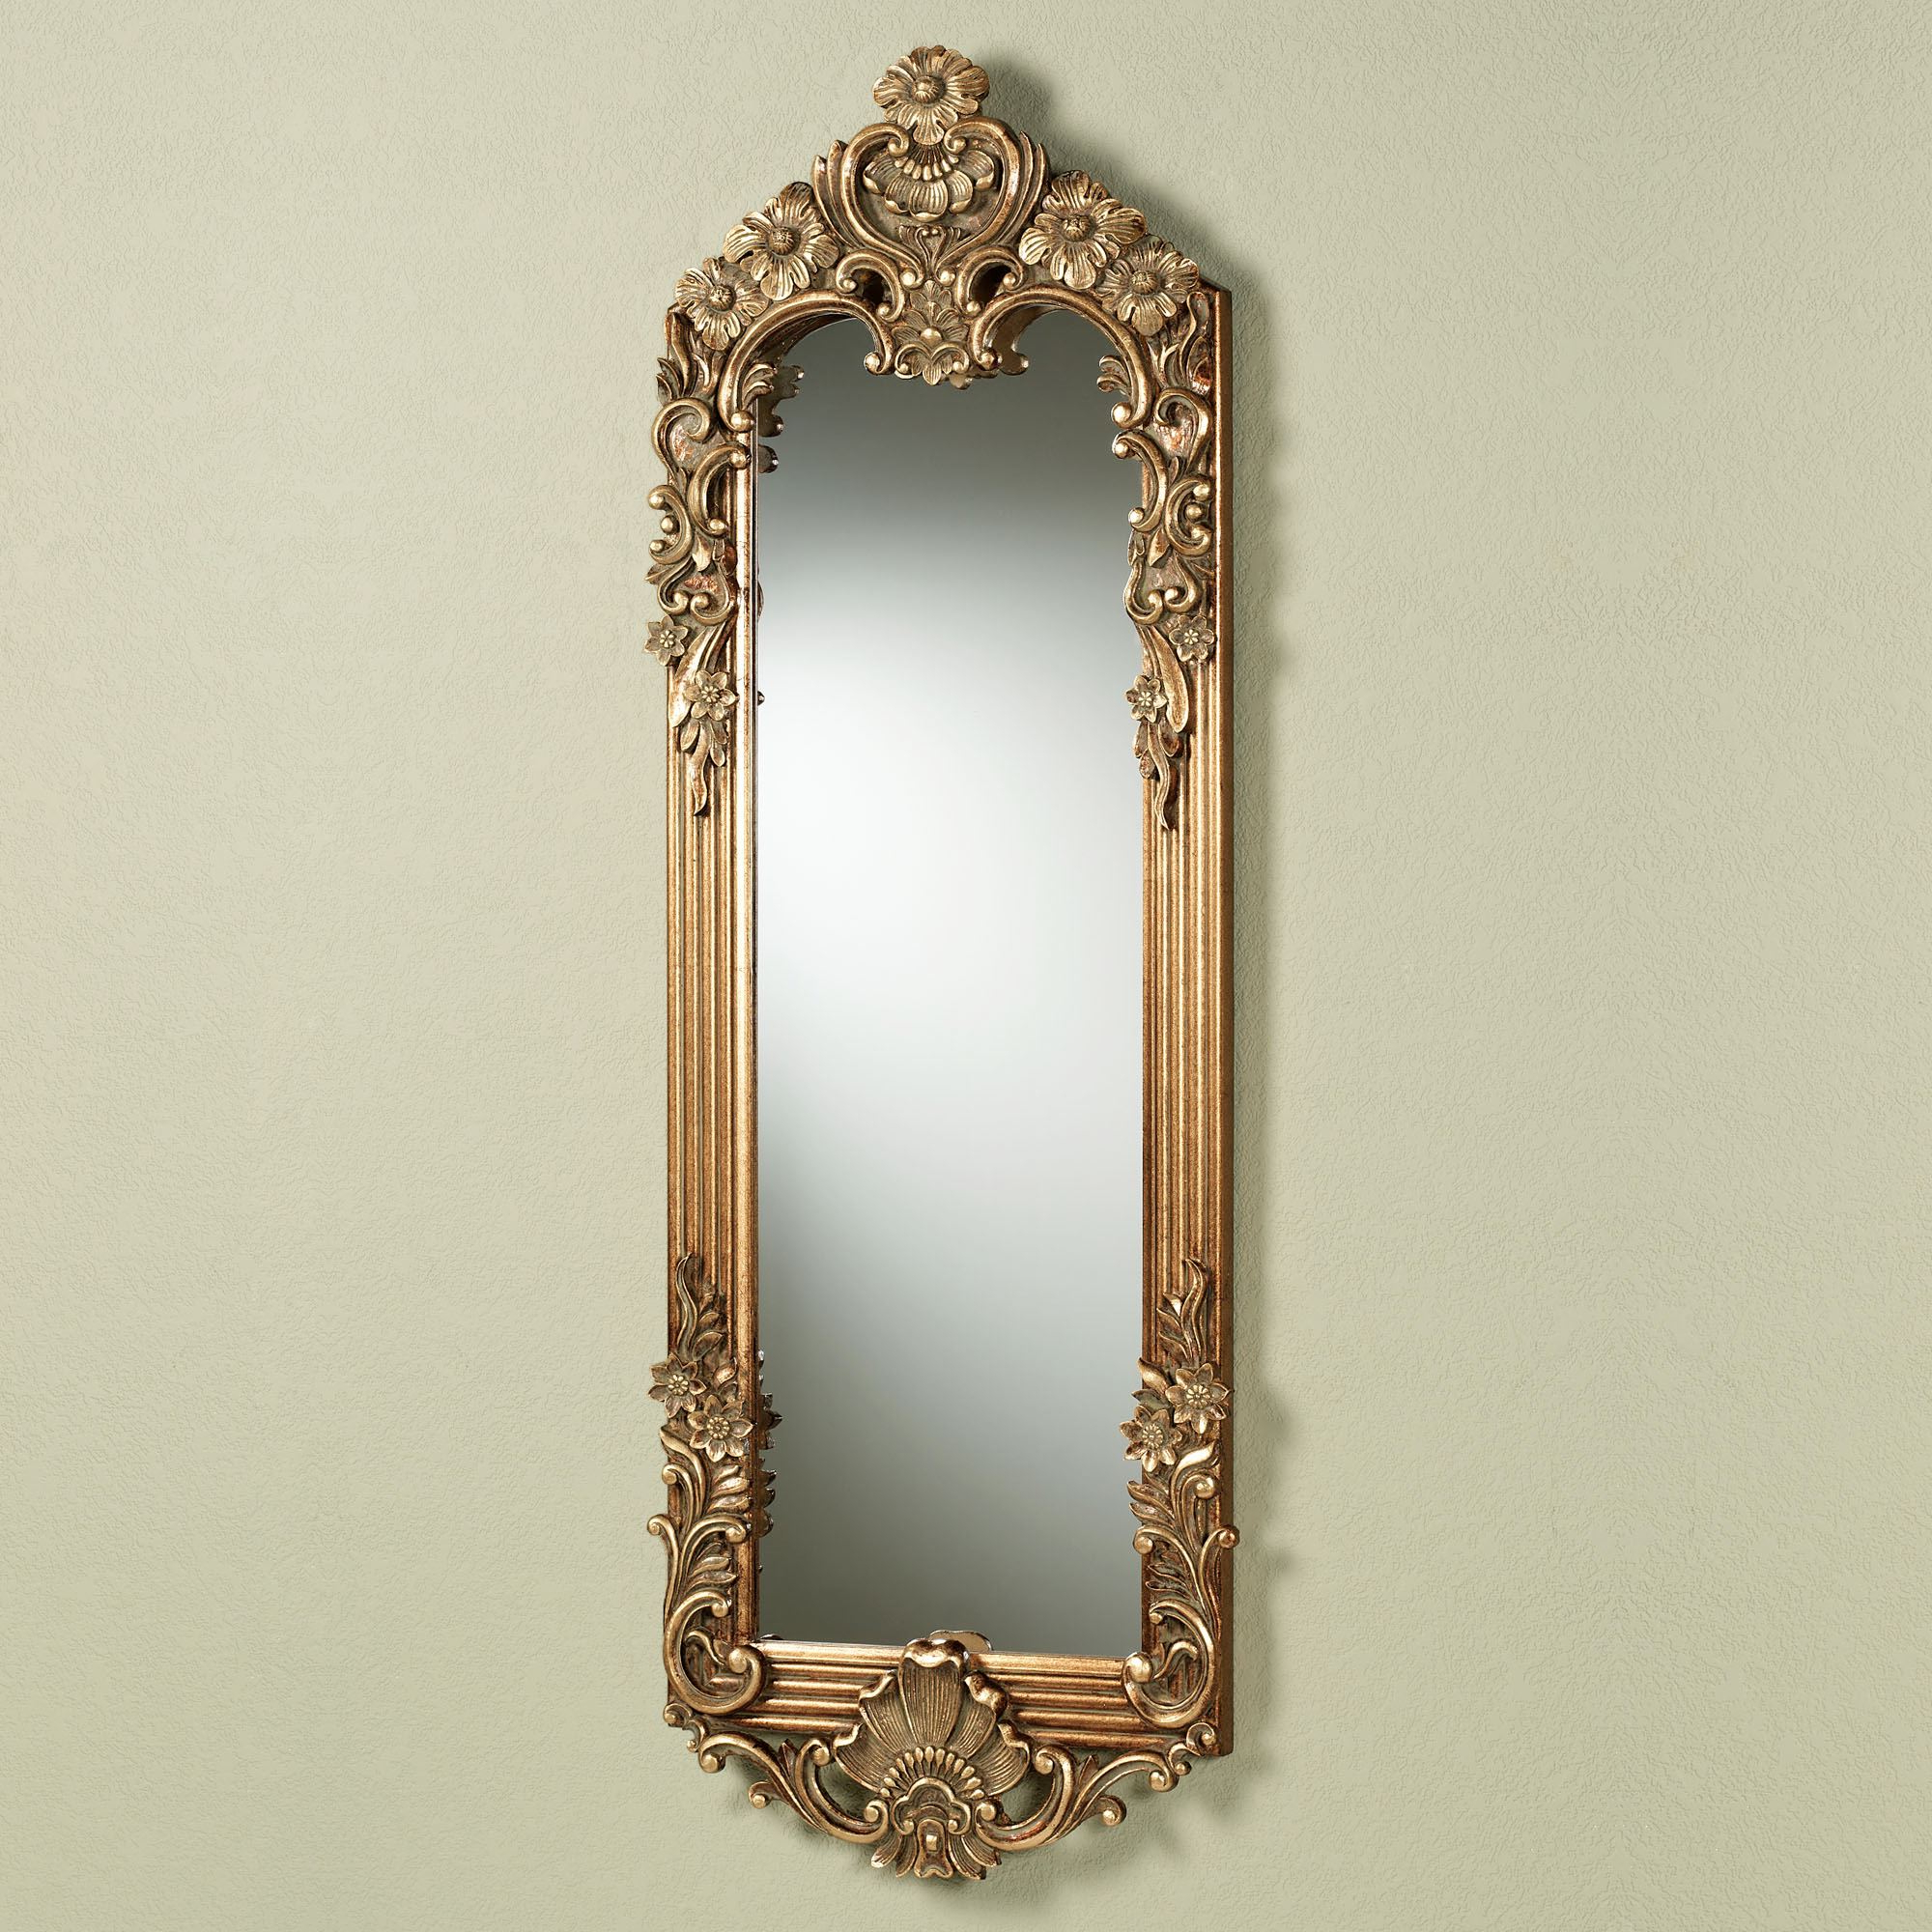 Elegant Large Wall Mirrors In Most Popular Gadsden Dark Gold Large Floral Wall Mirror Panel (Gallery 10 of 20)